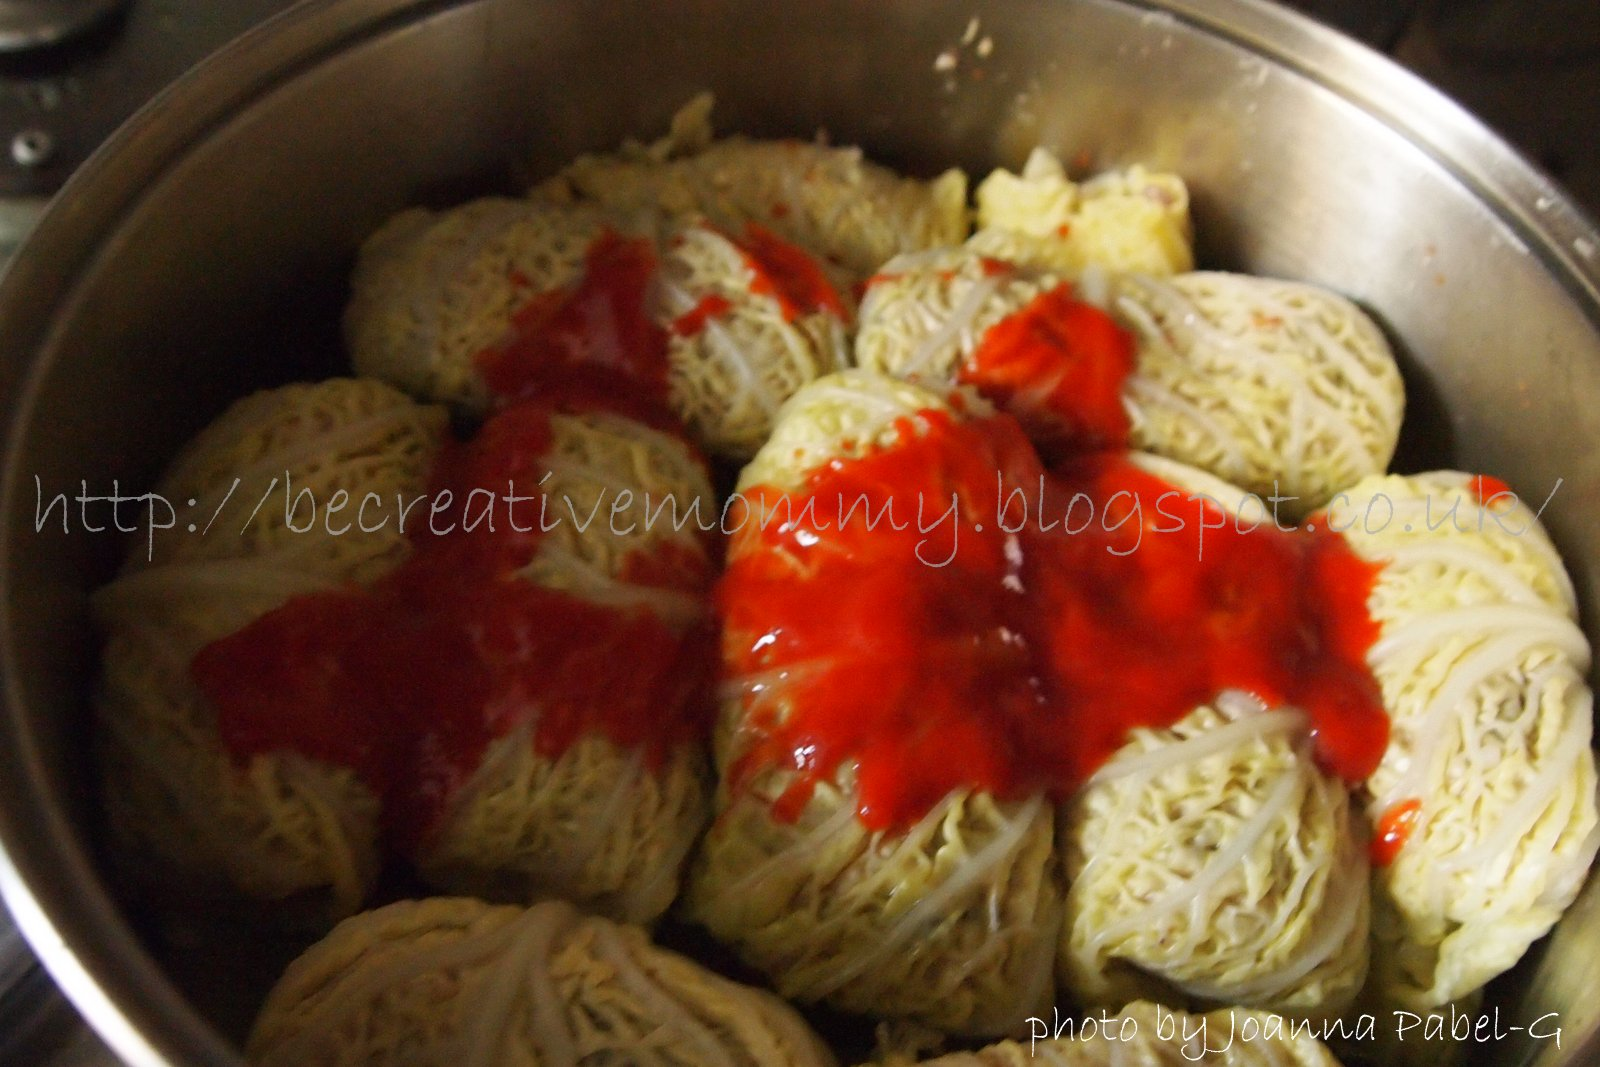 ... lifestyle Blog / Crafts: Make Polish Stuffed Cabbage Rolls - Golabki